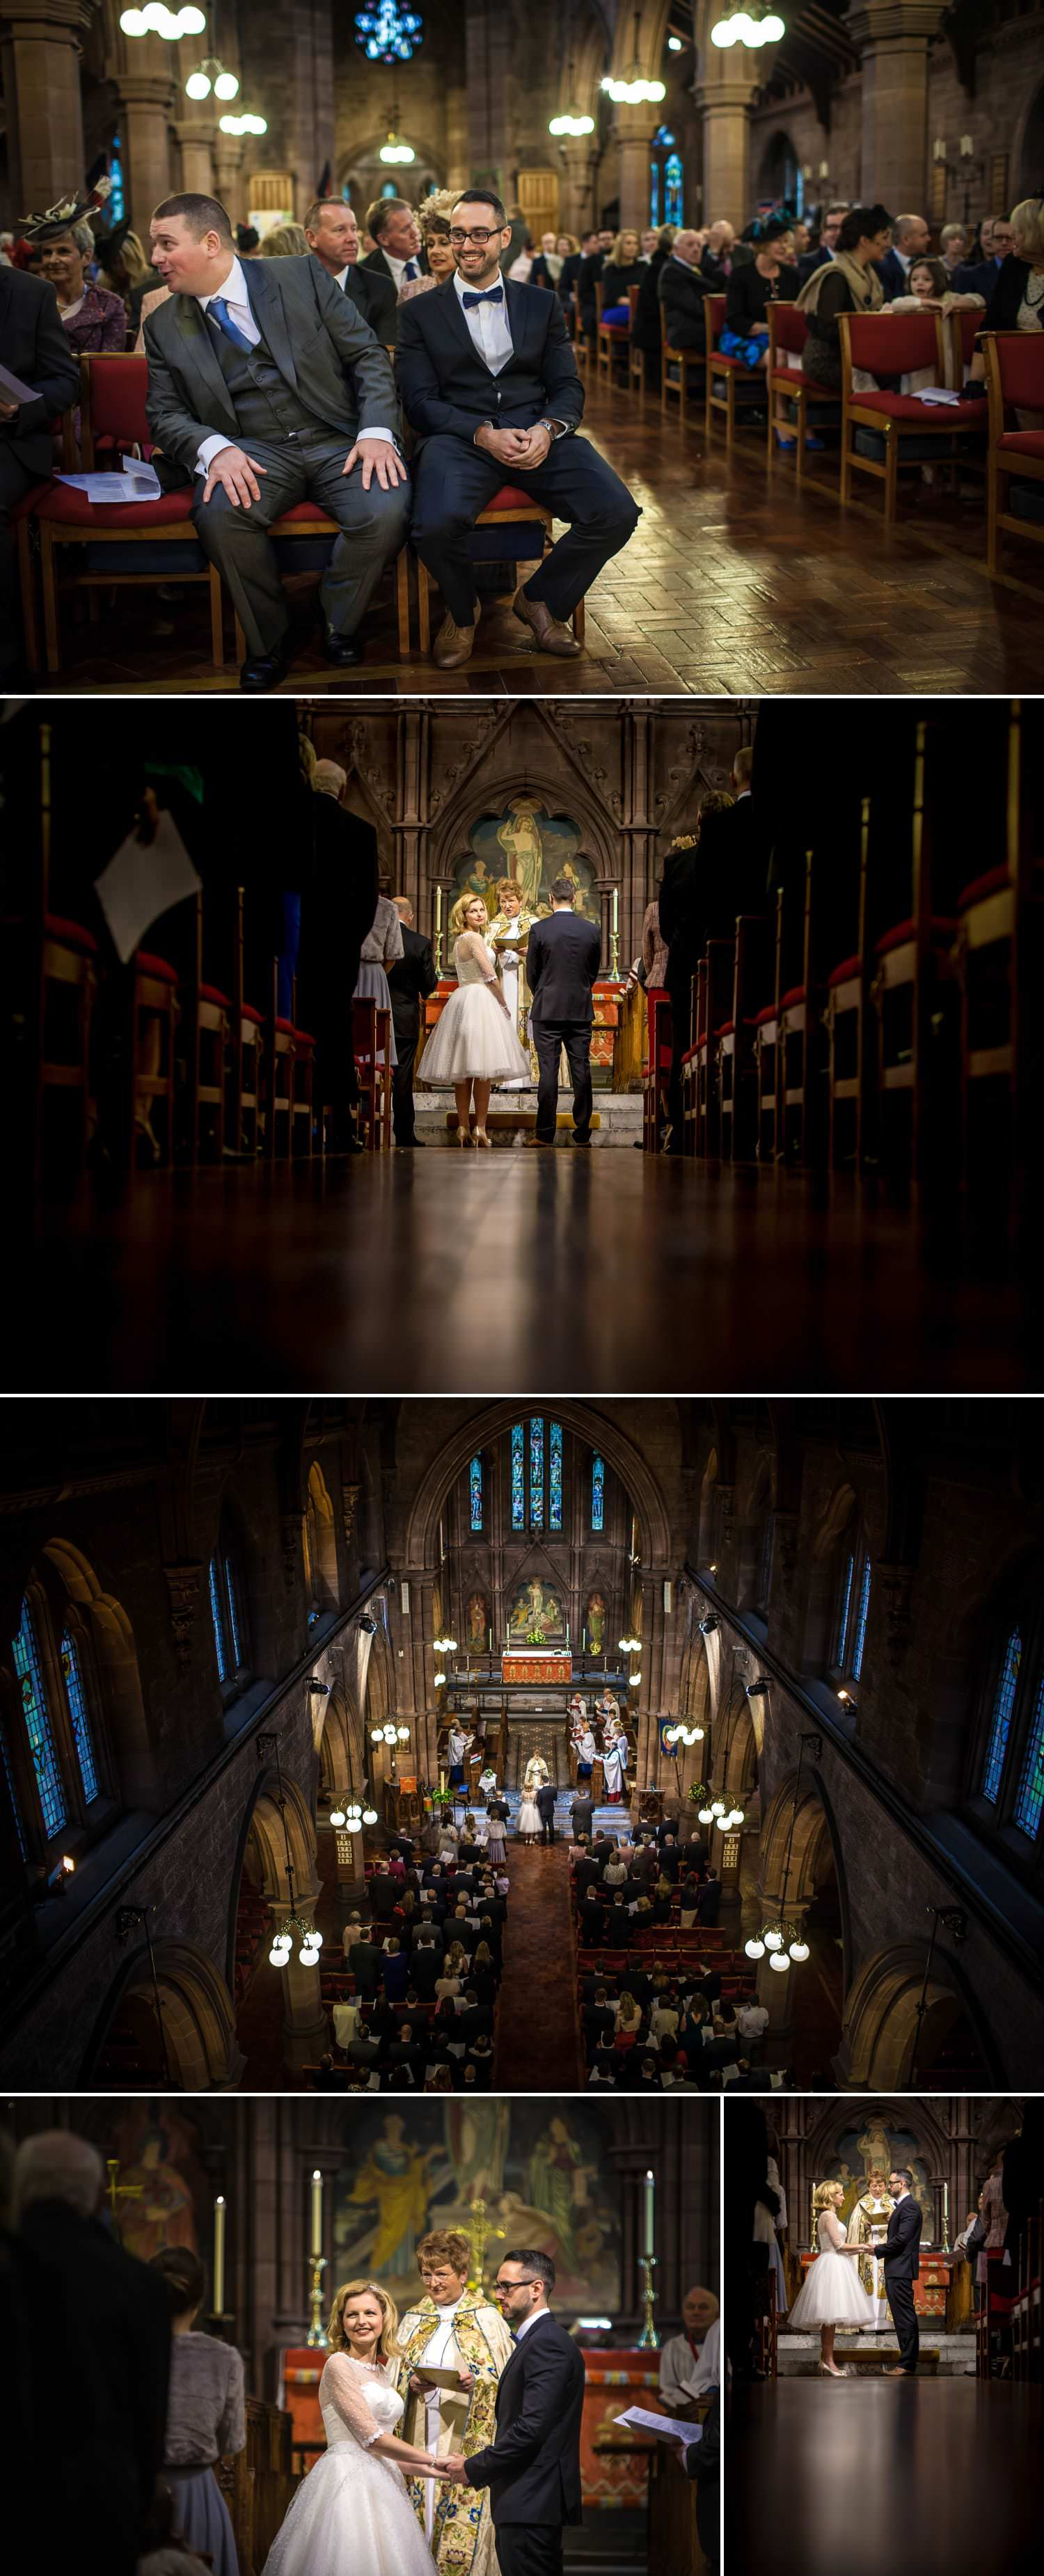 Wedding photographer of the ceremony in the church in Chester